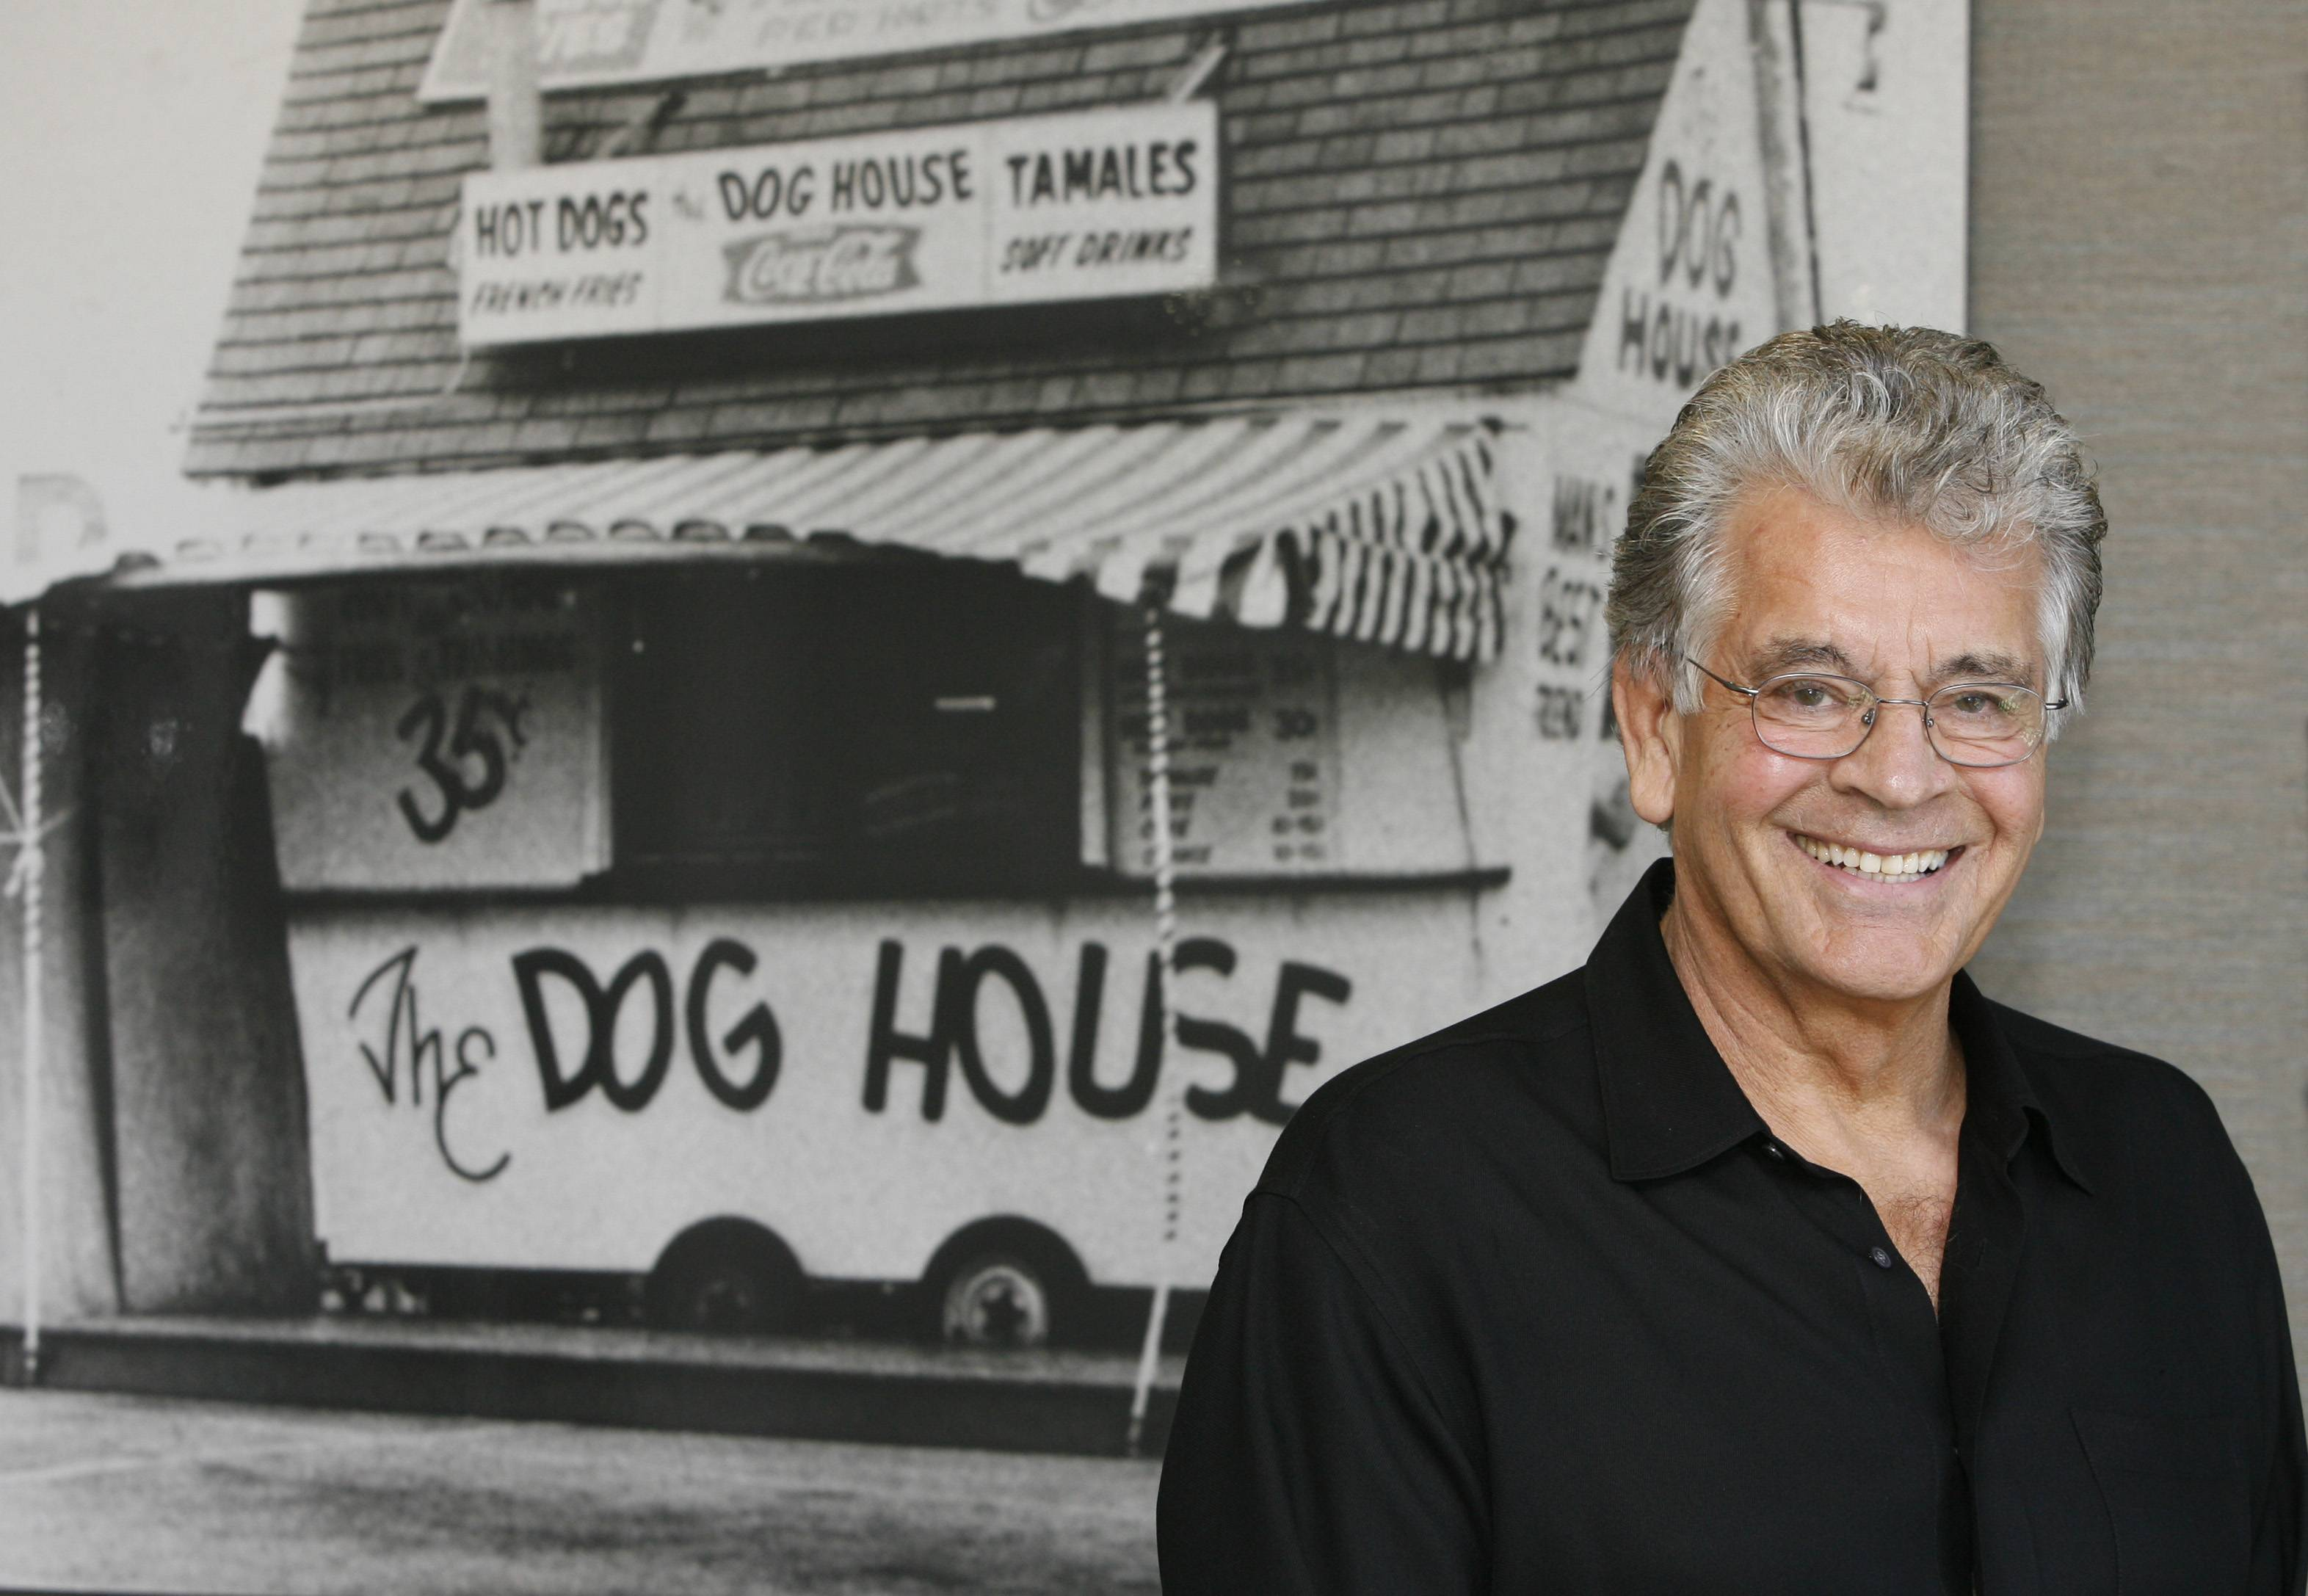 Dick Portillo is founder of the Portillo Restaurant Group based in Oak Brook. Portillo's announced plans Tuesday for Warren Buffett's Berkshire Partners to acquire the company.